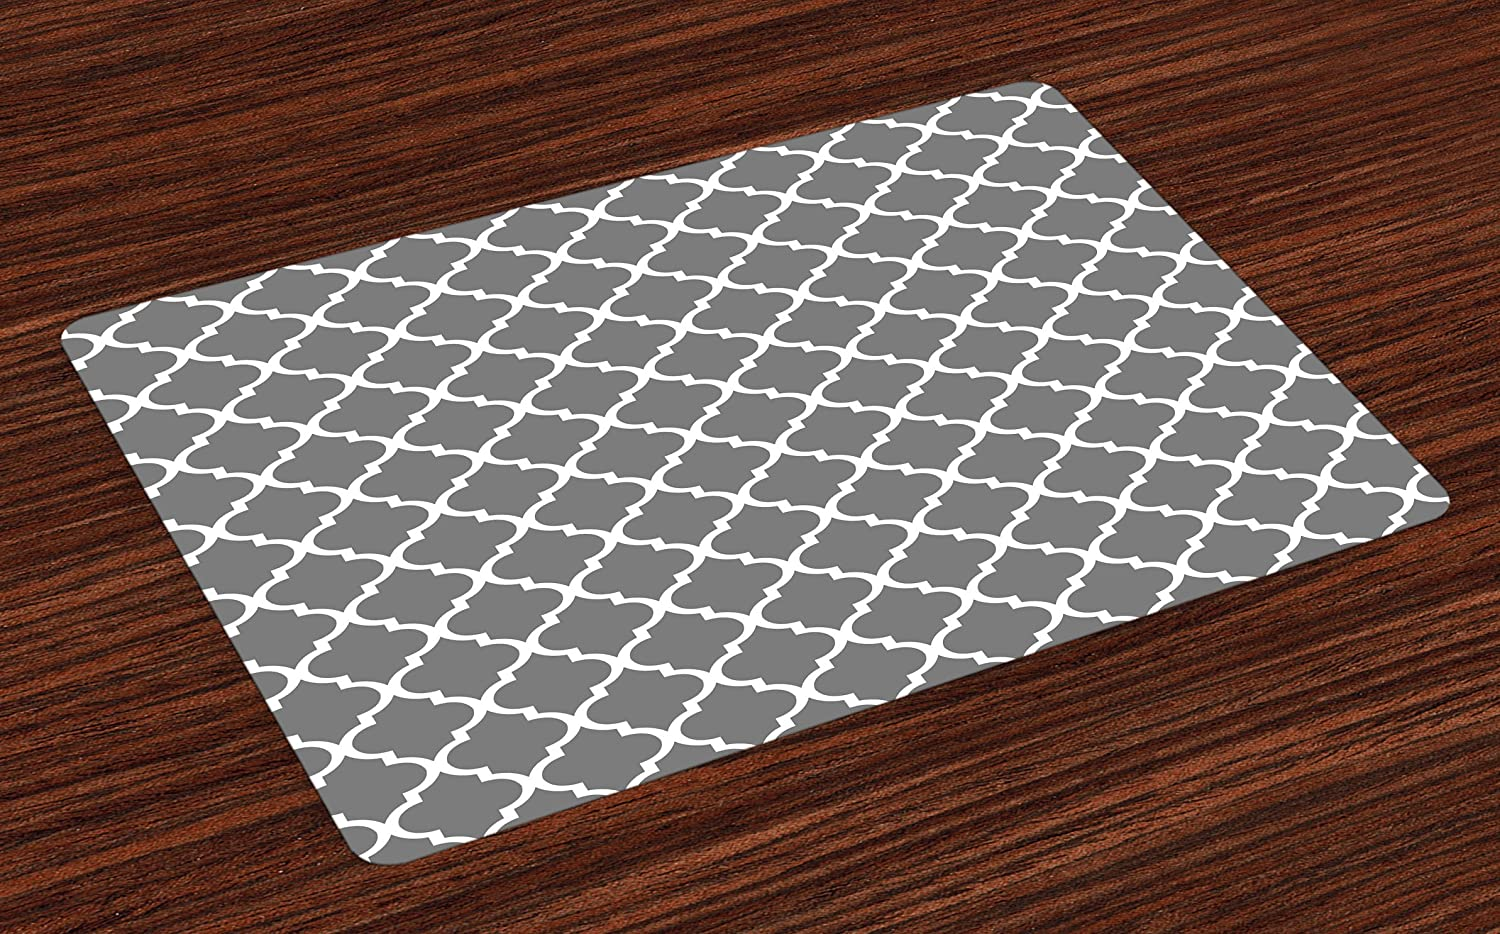 Ambesonne Grey Place Mats Set of 4, Quatrefoil Pattern Barbed Design Geometric Leaf Print Lattice Country Life Inspired, Washable Fabric Placemats for Dining Room Kitchen Table Decor, Gray White